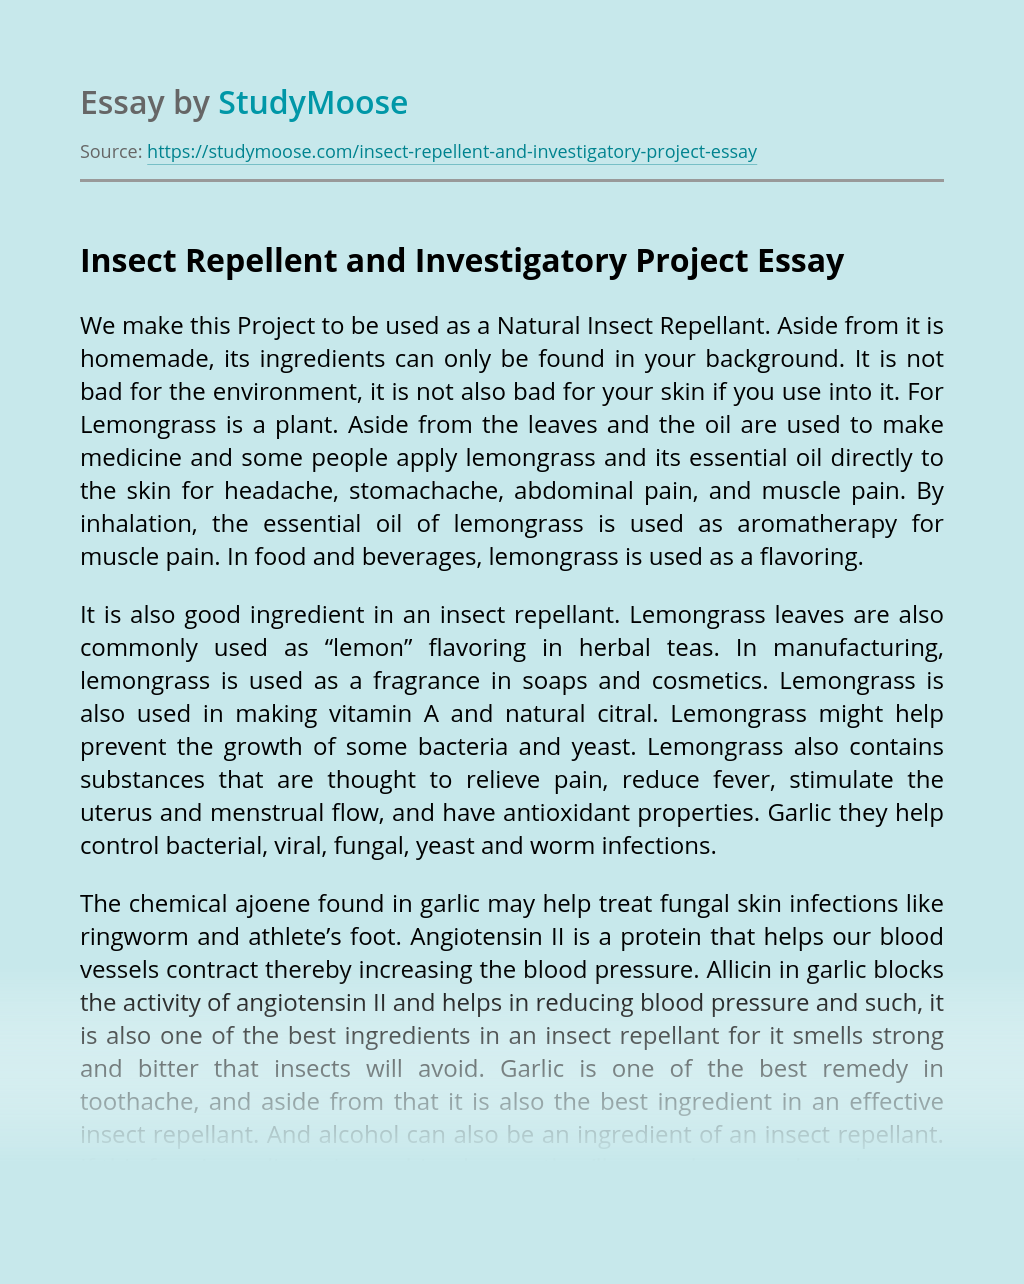 Insect Repellent and Investigatory Project